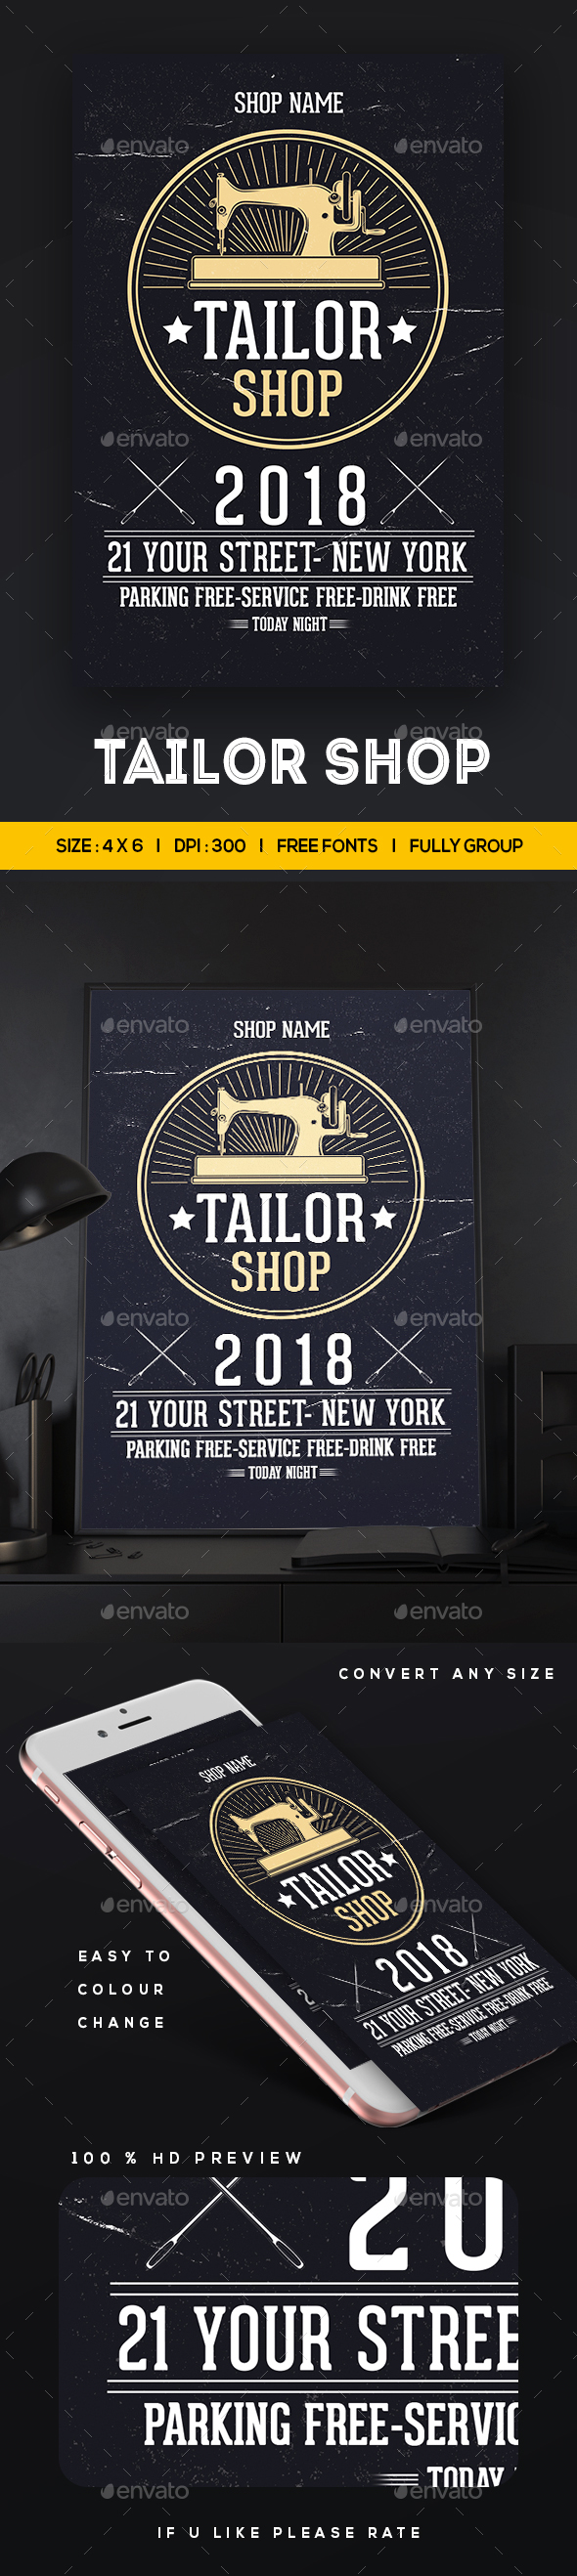 Tailor Shop Flyer Template - Miscellaneous Print Templates